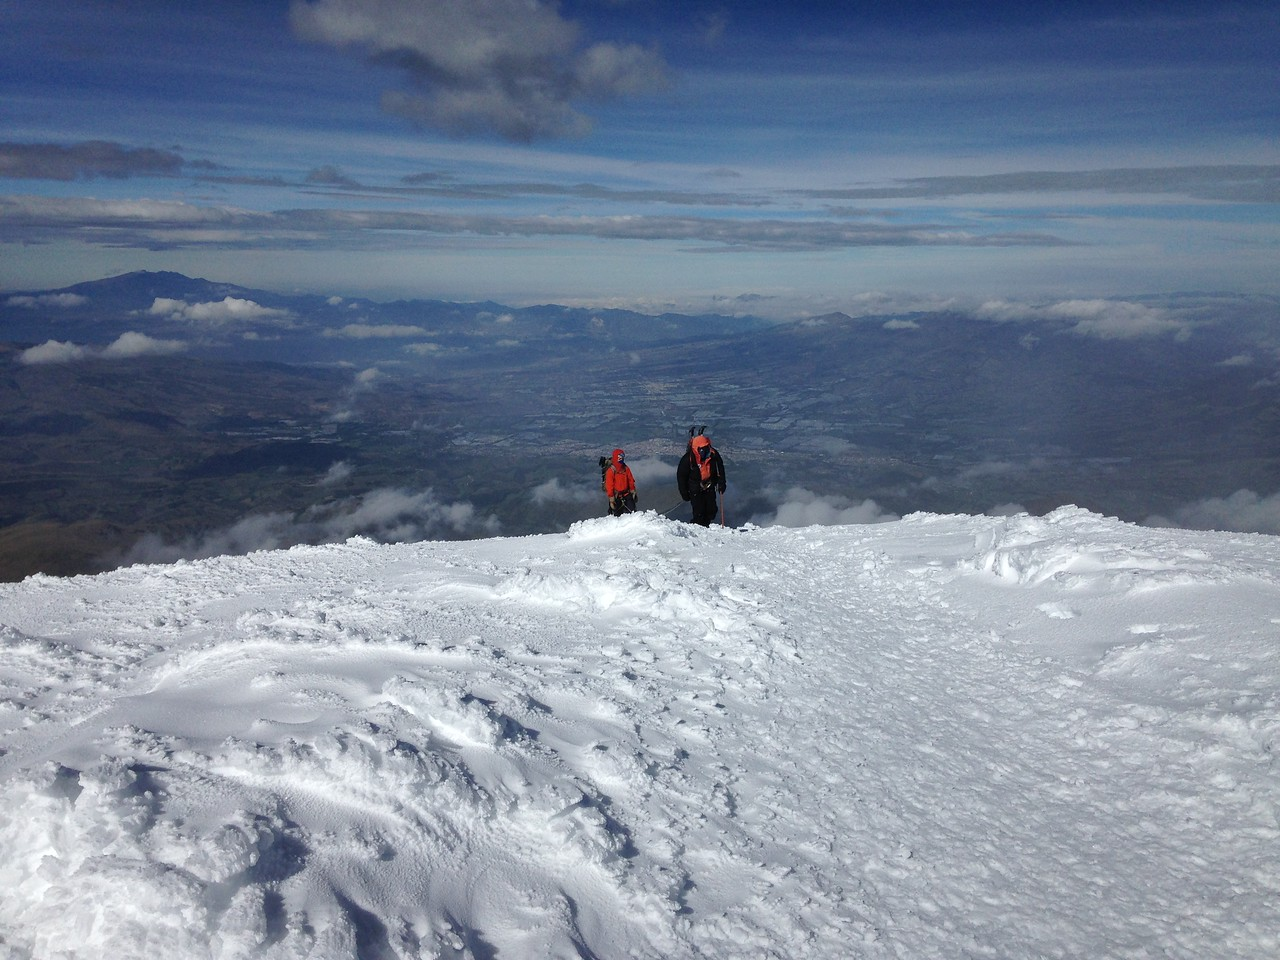 Ecuadorian IFMGA guide Fredy Tipan nearing the summit of Cayambe with his team.